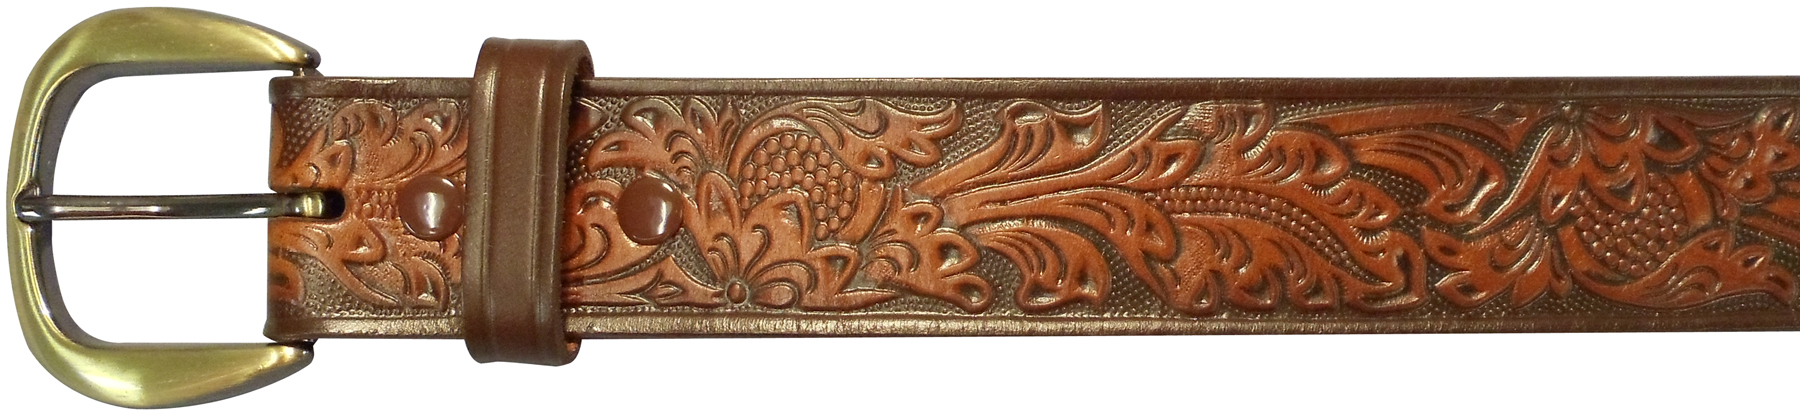 "10610110242 - 42"" Brown Leather Field & Stream Embossed Belt"